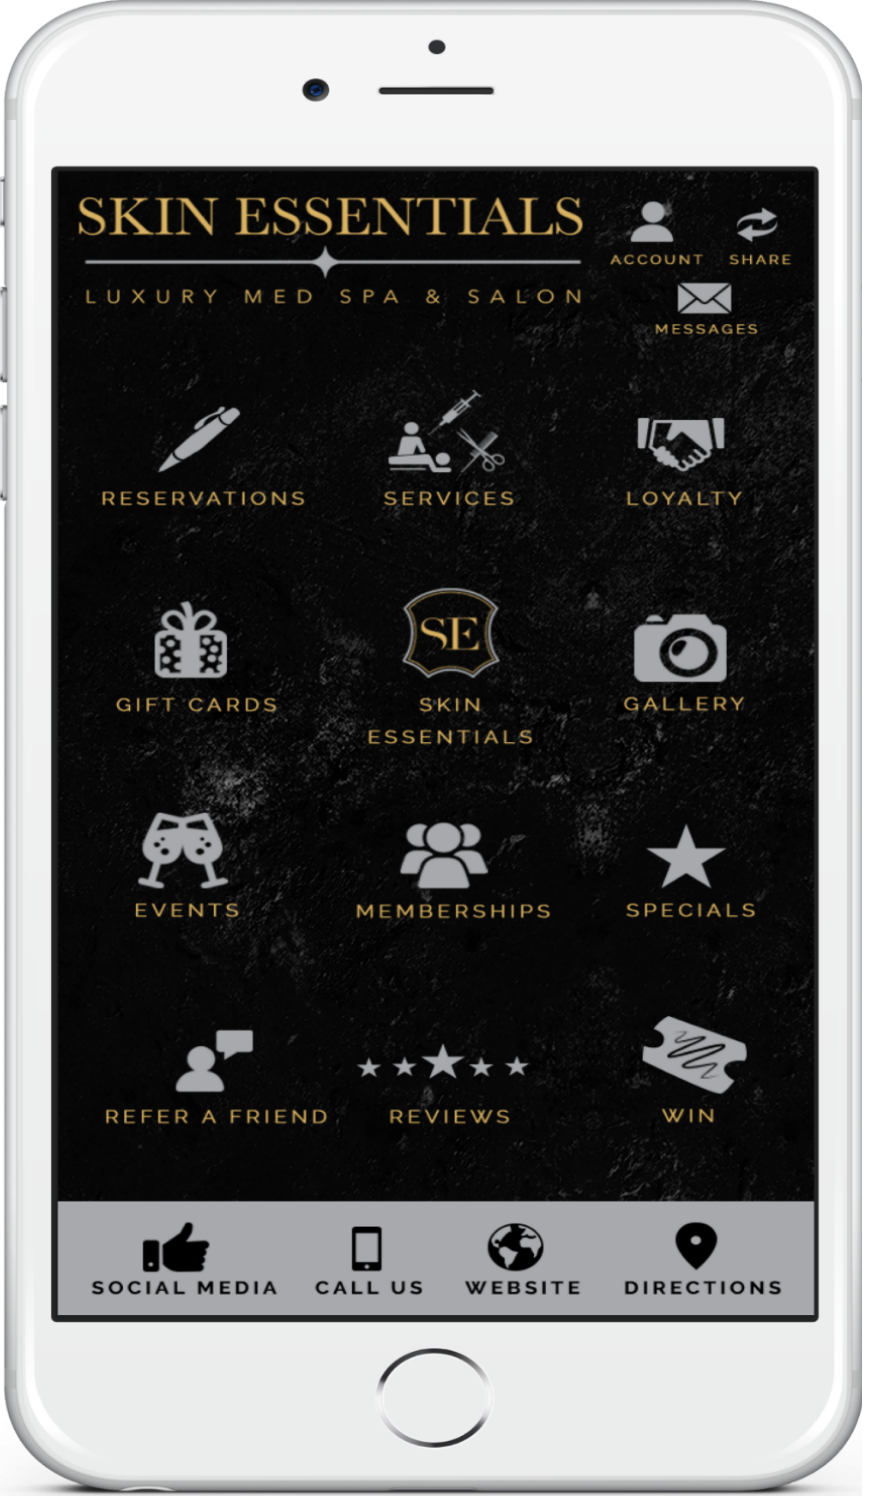 Experience the Skin Essentials Luxury Med Spa & Salon Mobile App